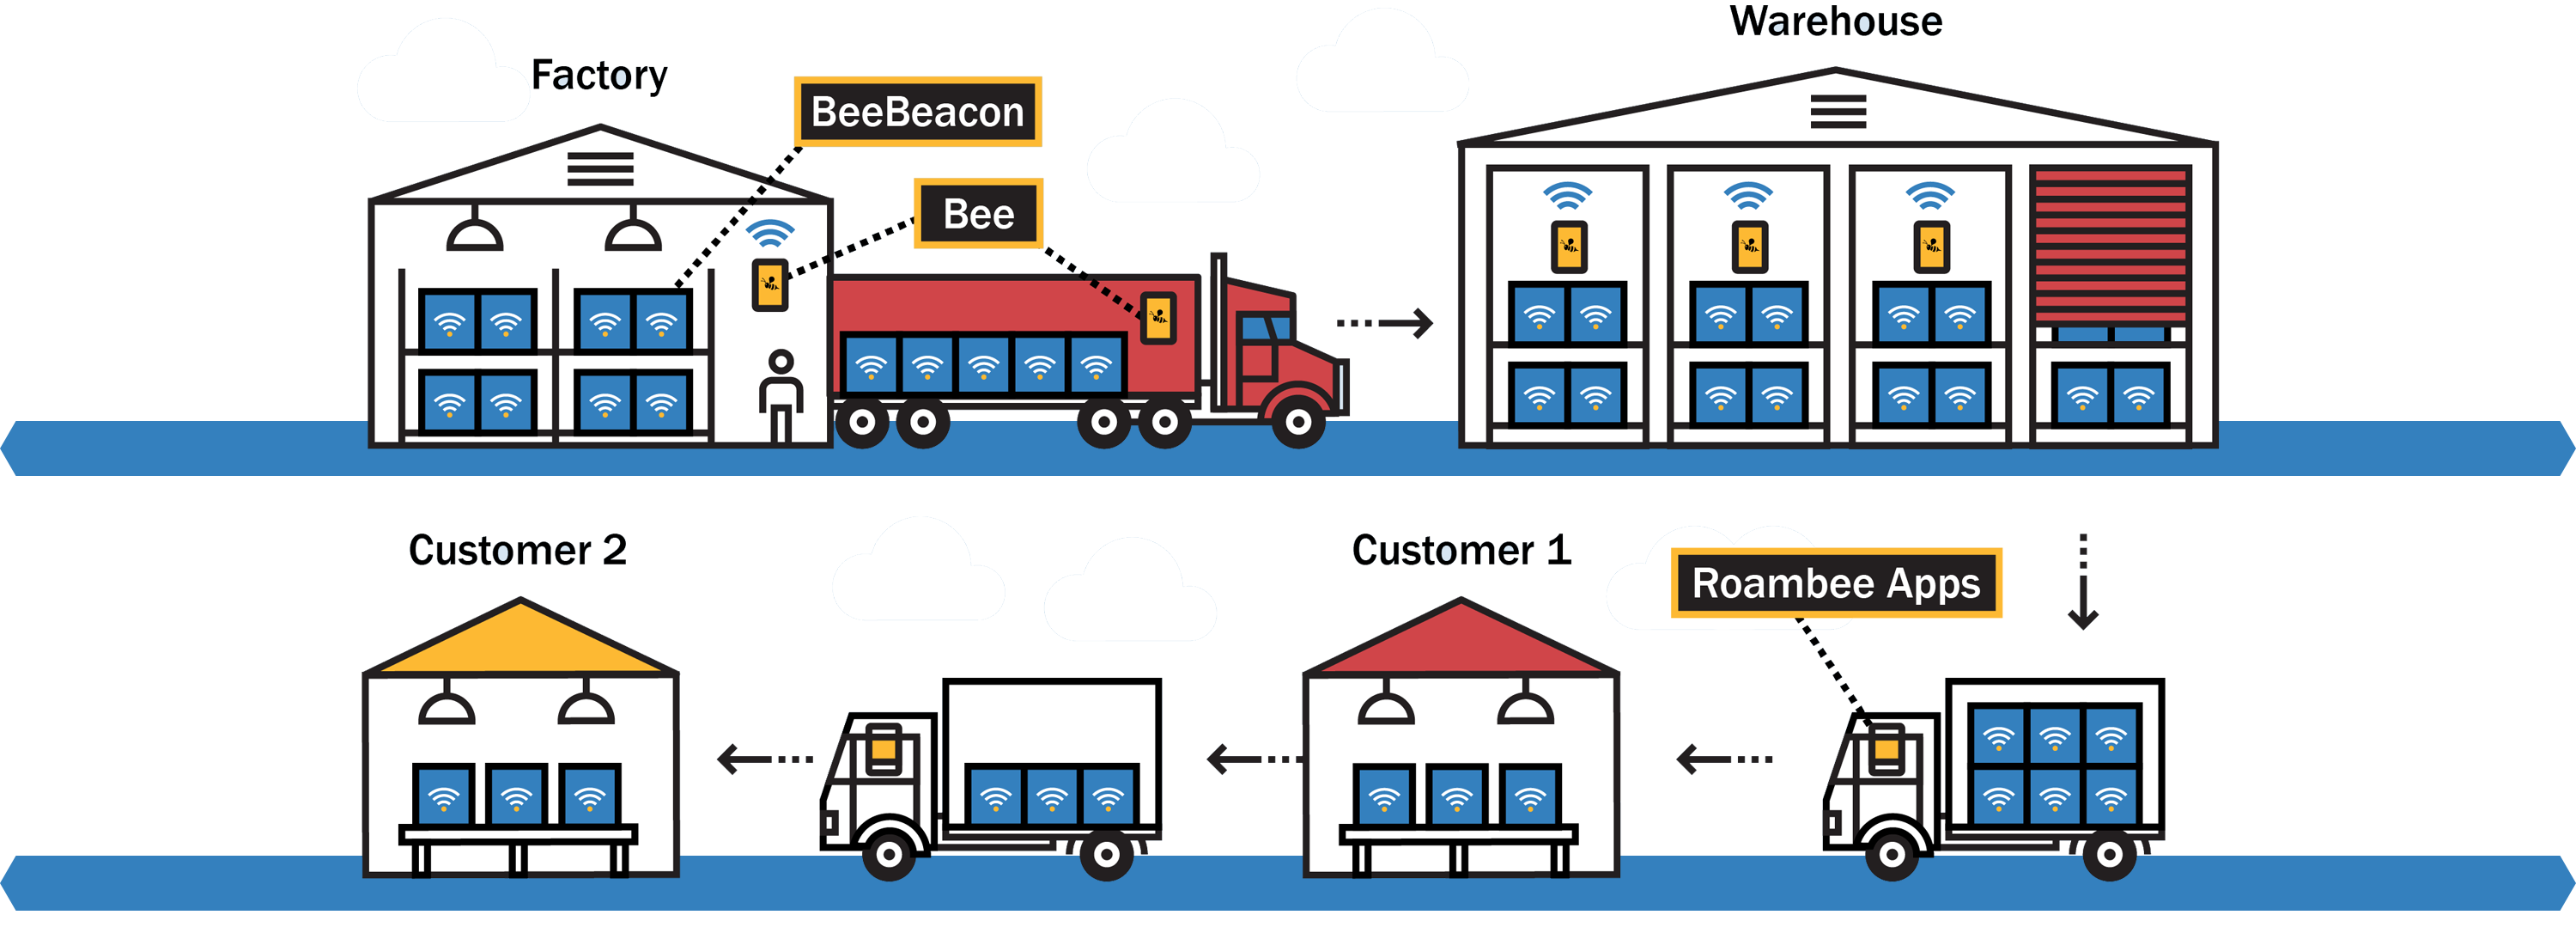 BeeBeacon's Real-Time Supply Chain Solution